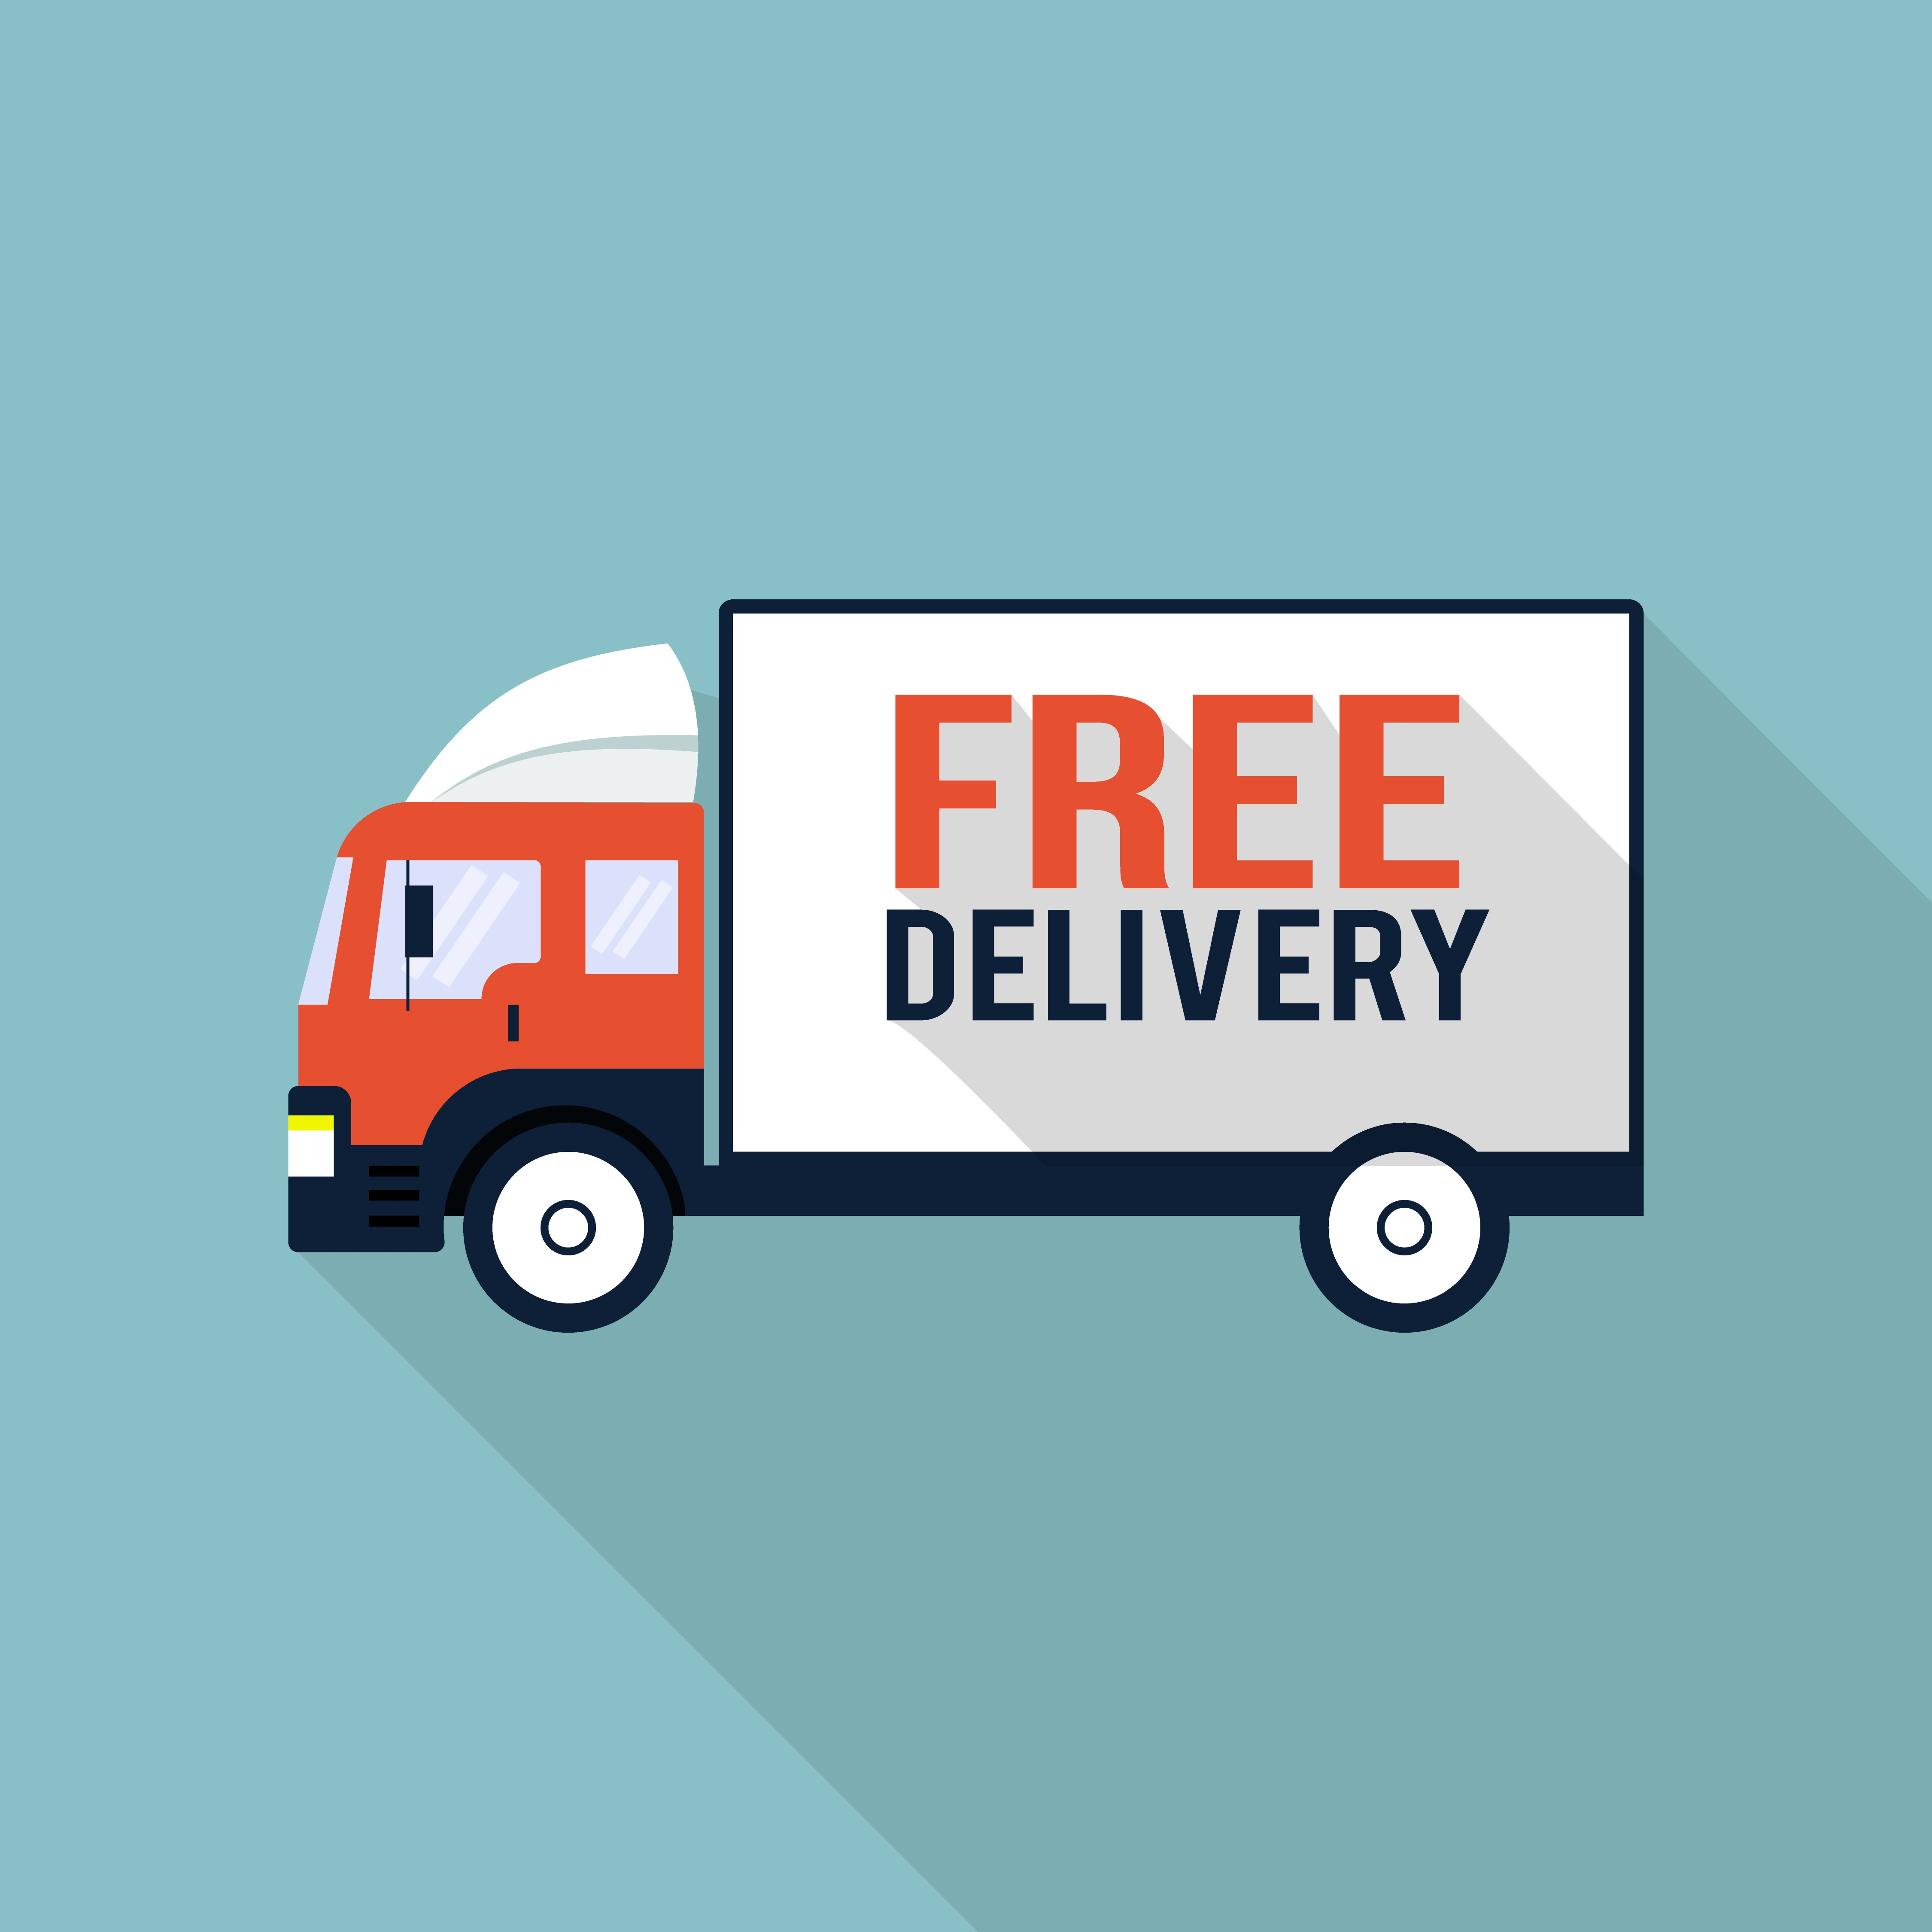 Free Mattress Delivery in Sarasota Venice and Lakewood